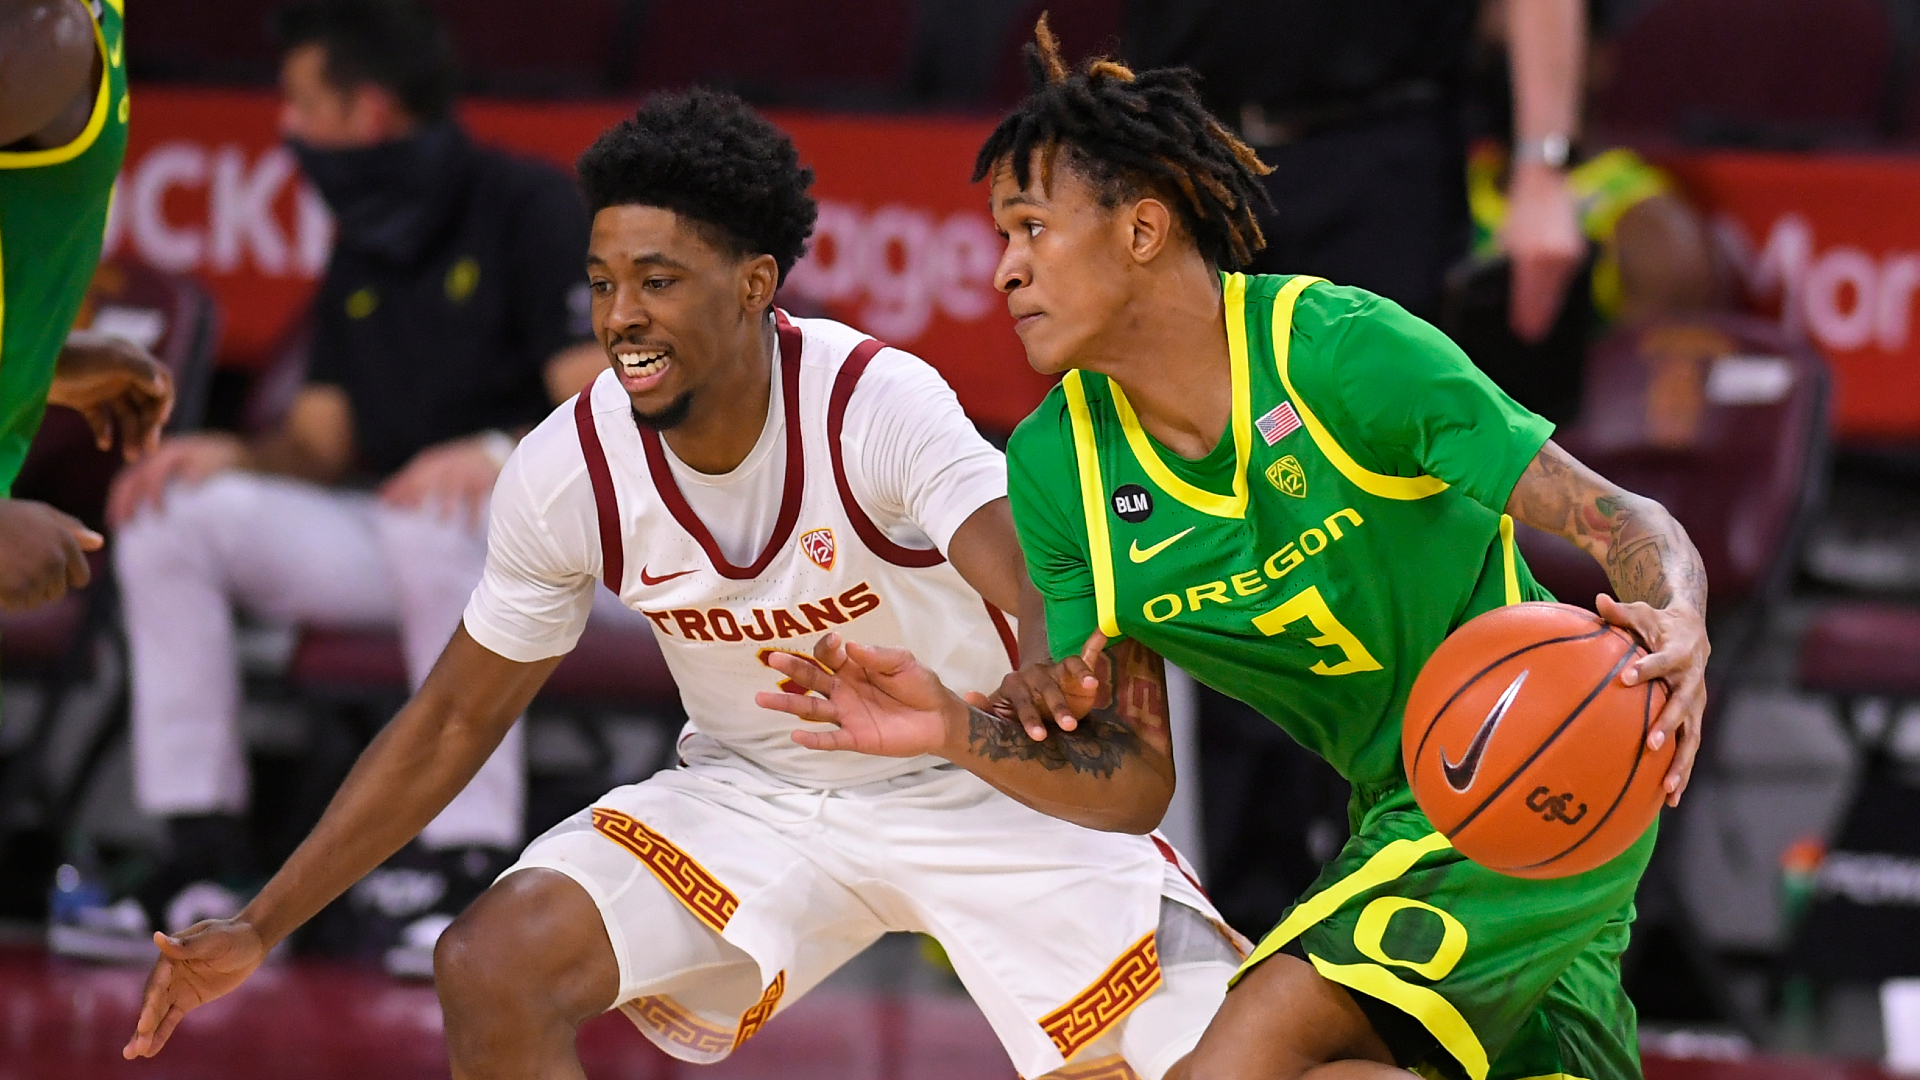 Pac-12 Tournament bracket: Full TV schedule, scores, results for 2021 basketball tournament